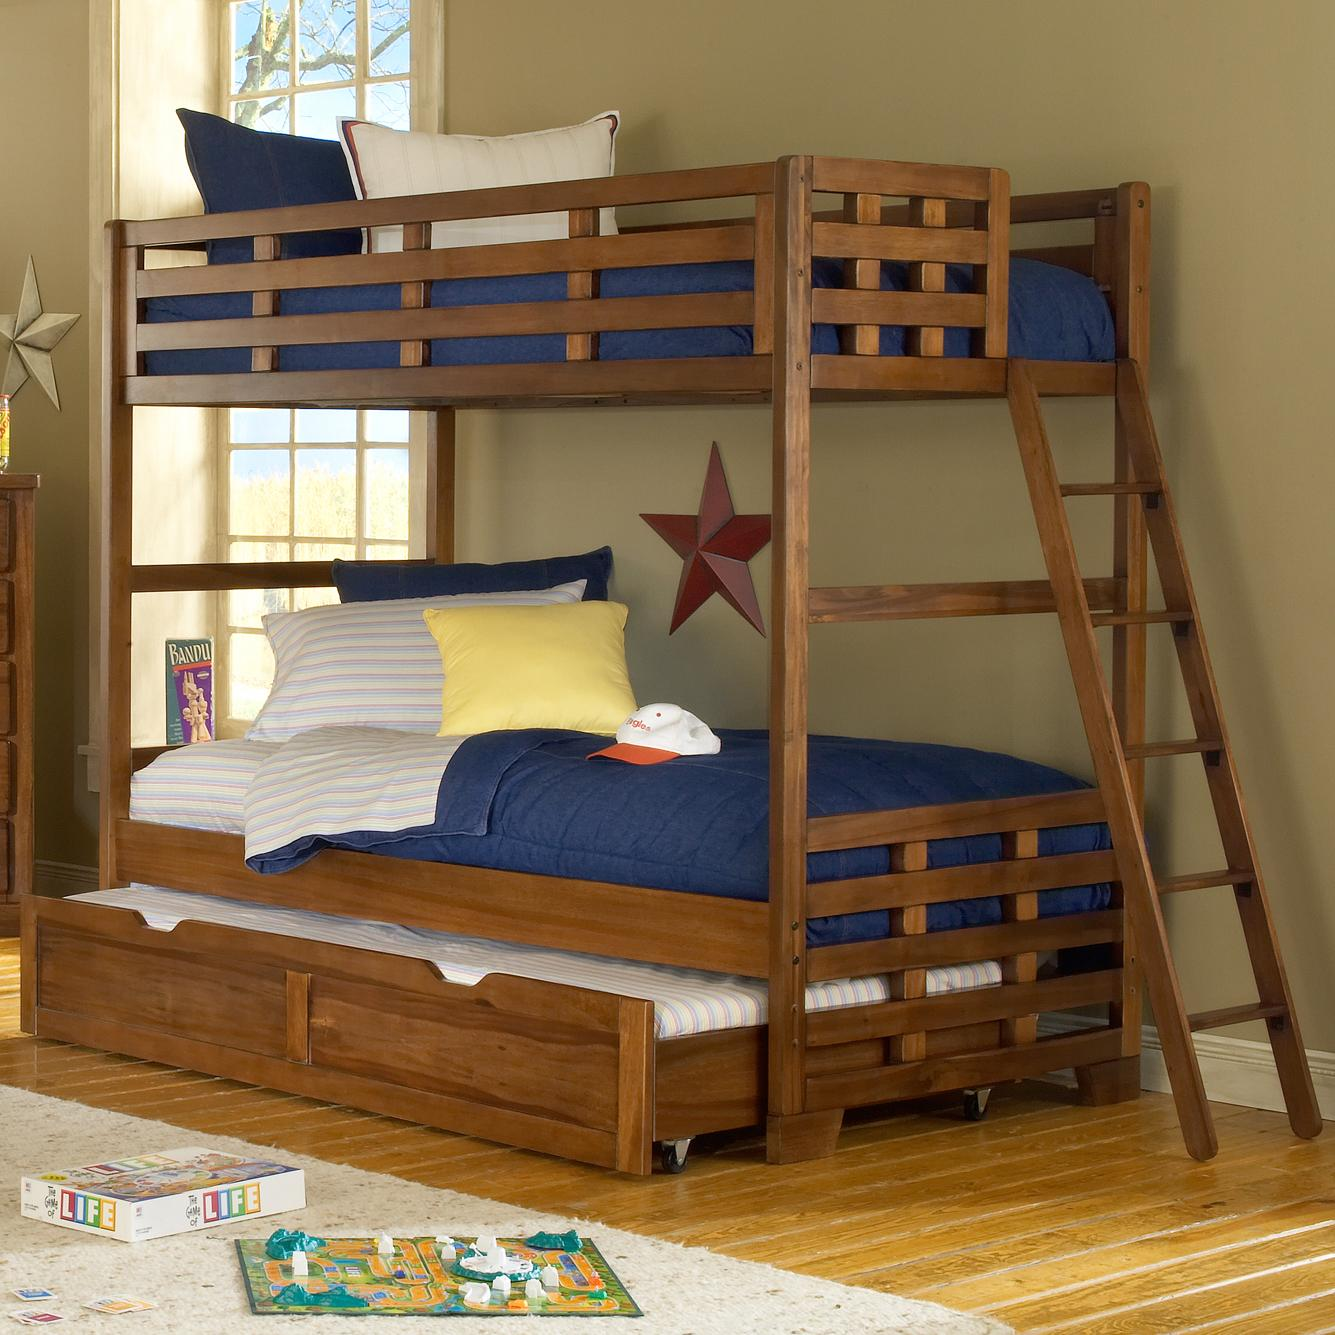 Boys Bunk Bed With Trundle